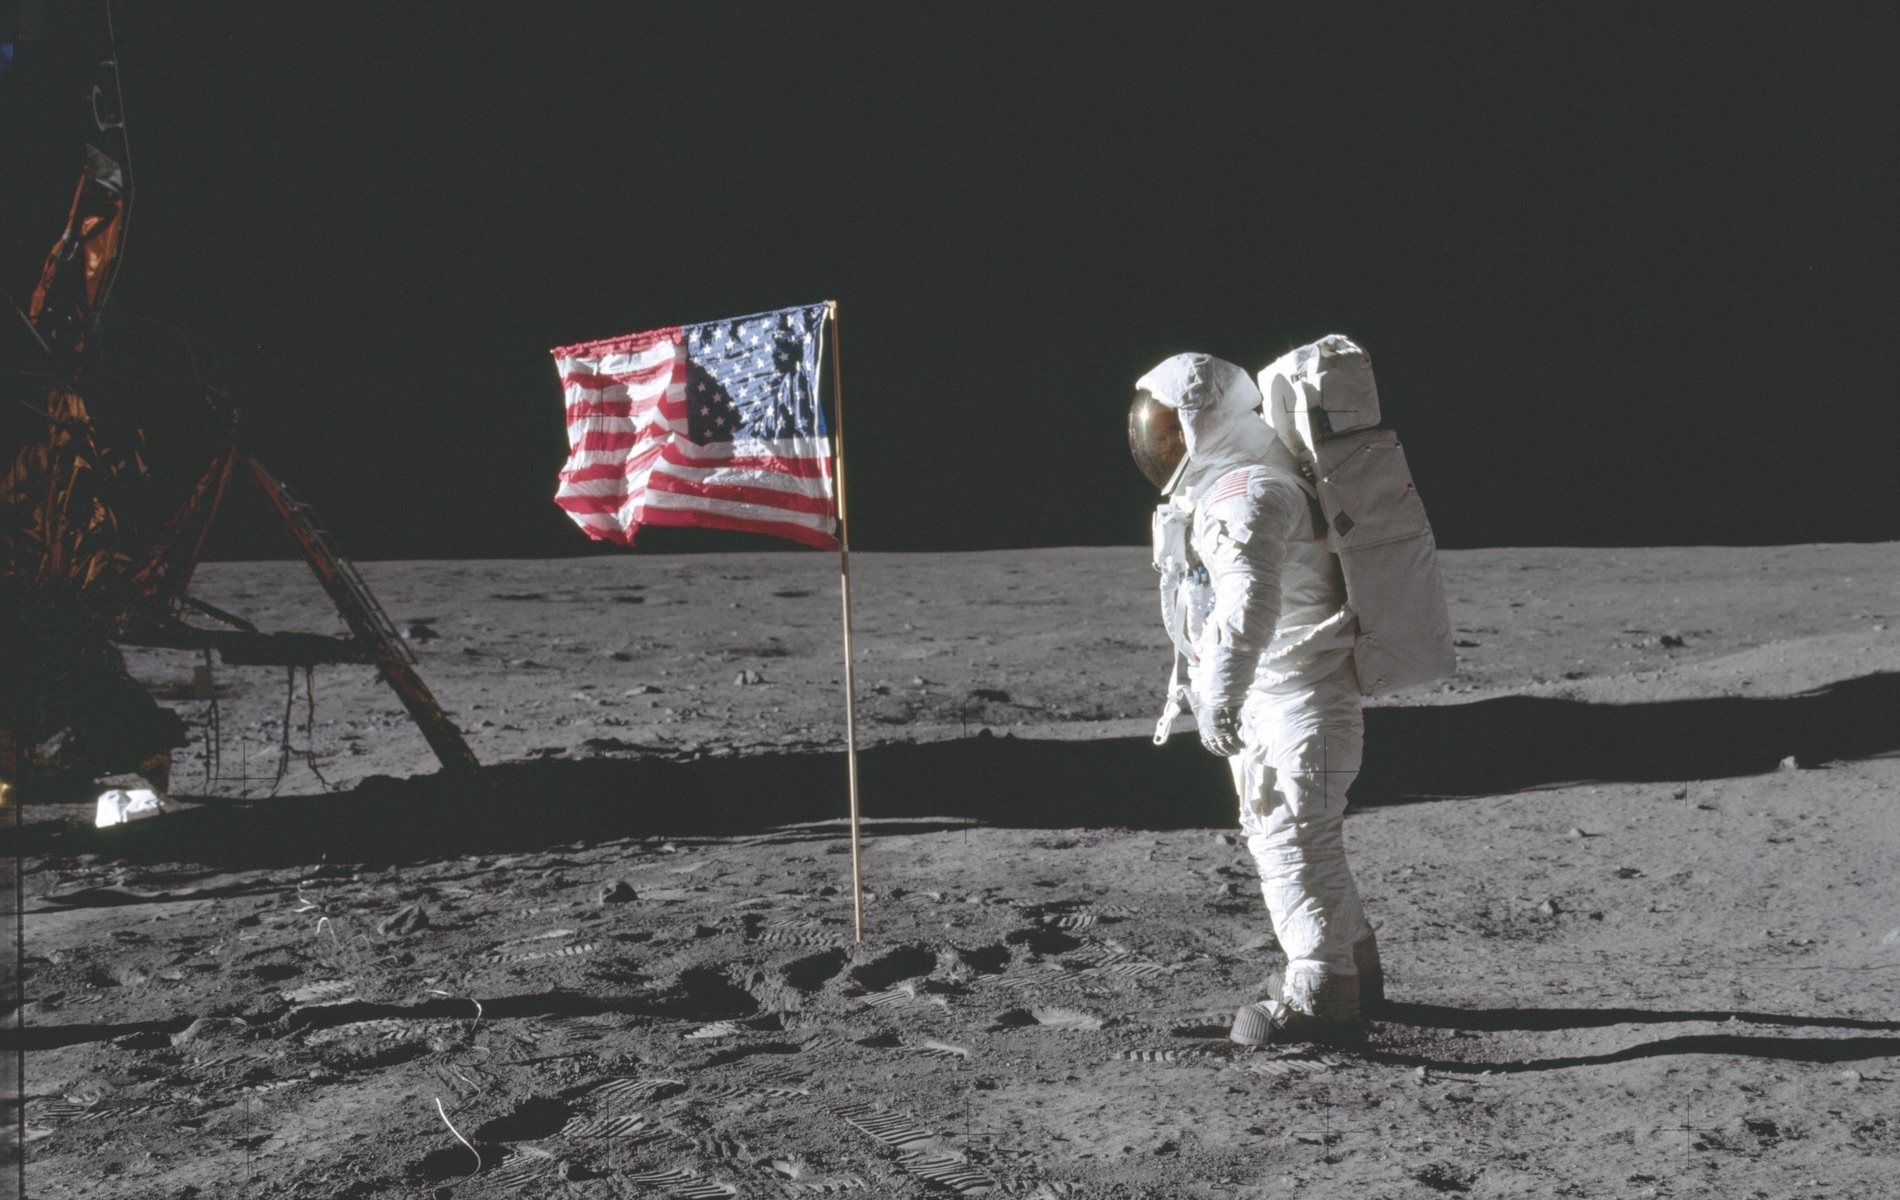 Buzz Aldrin poses beside the deployed United States flag during Apollo 11 extravehicular activity on the lunar surface. The lunar module (LM) is on the left, and the footprints of the astronauts are visible in the soil of the moon. Neil Armstrong took this photo with a 70mm Hasselblad lunar surface camera. While Armstrong and Aldrin descended in the Eagle LM to explore the moon's Sea of Tranquility region, Michael Collins remained with the command and service module Columbia in lunar orbit. NASA